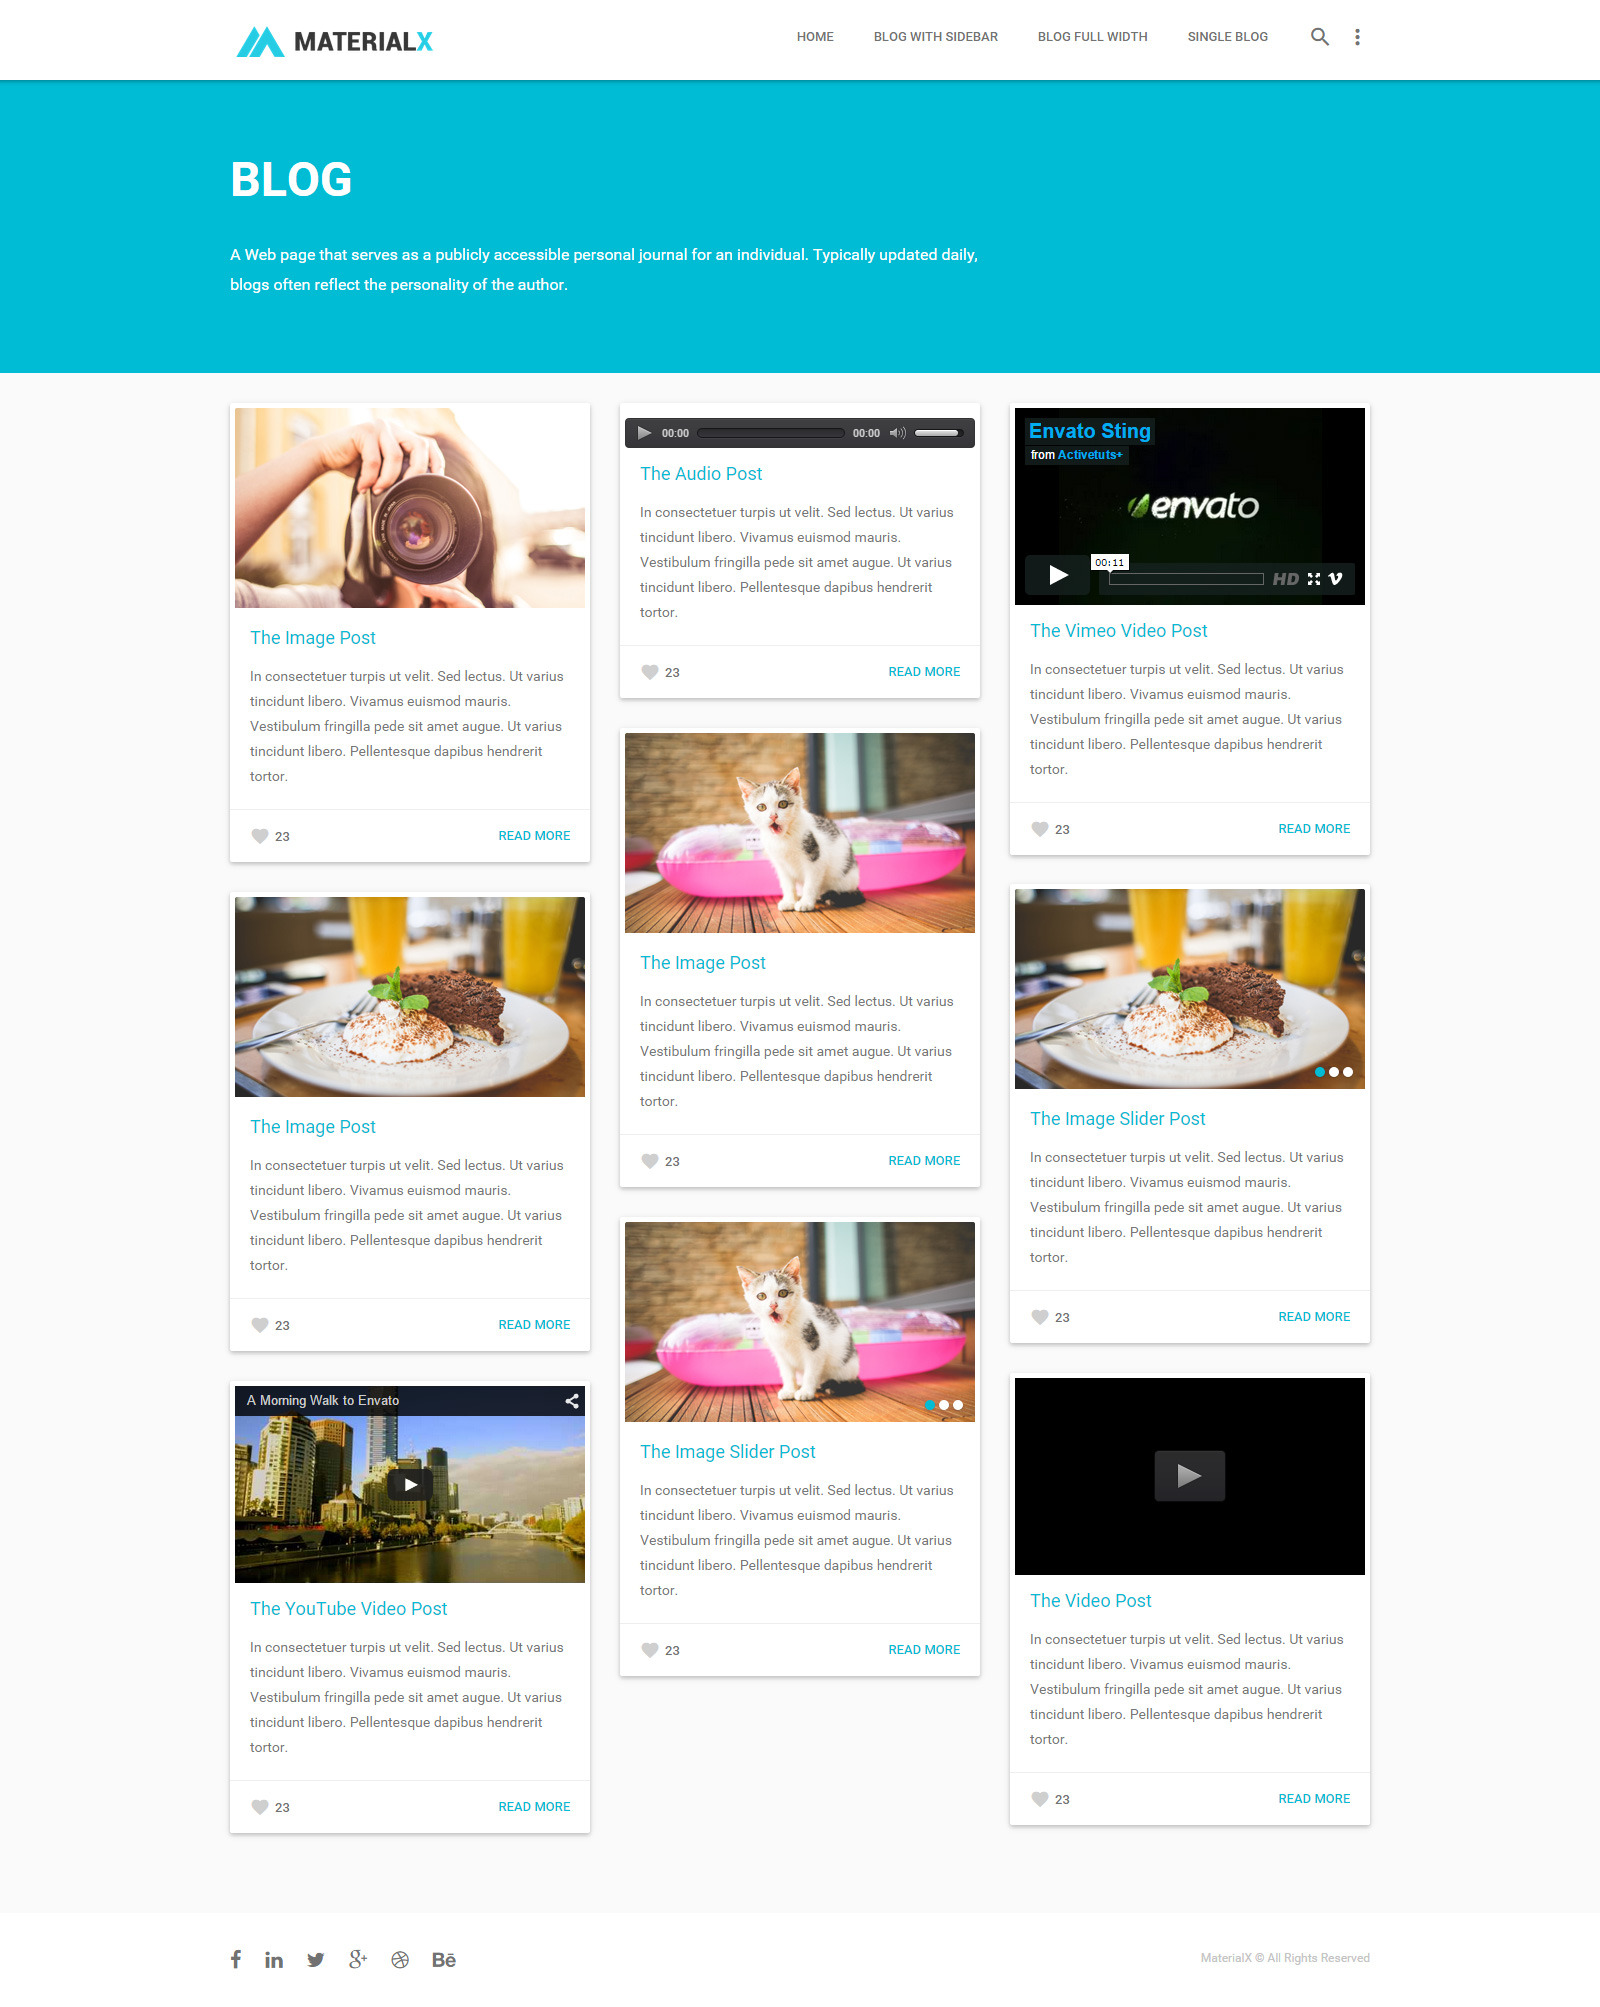 squarespace templates with sidebar - materialx material design personal template by bdinfosys